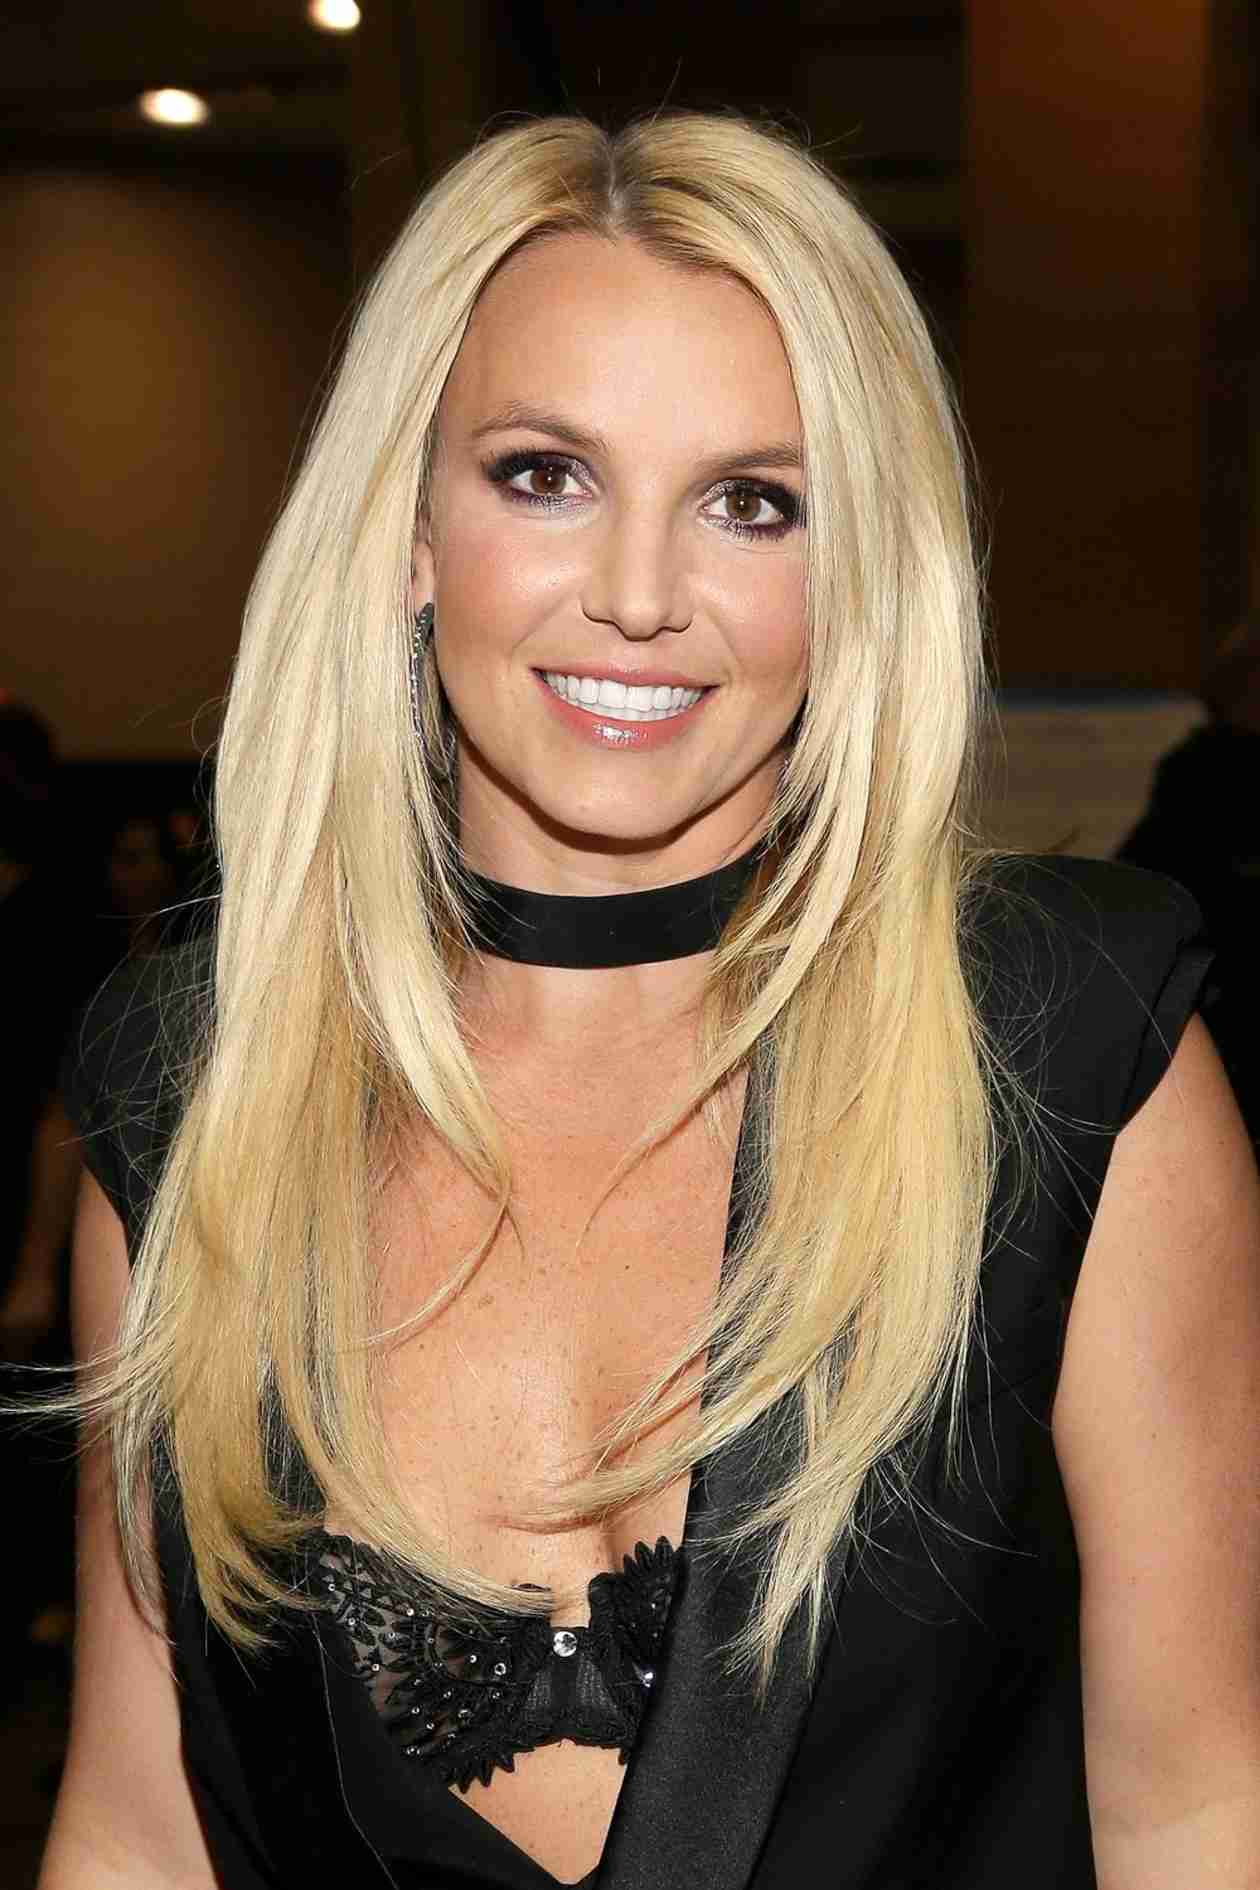 Britney Spears Steps Out With Gold Band on Her Ring Finger: See the Pic!